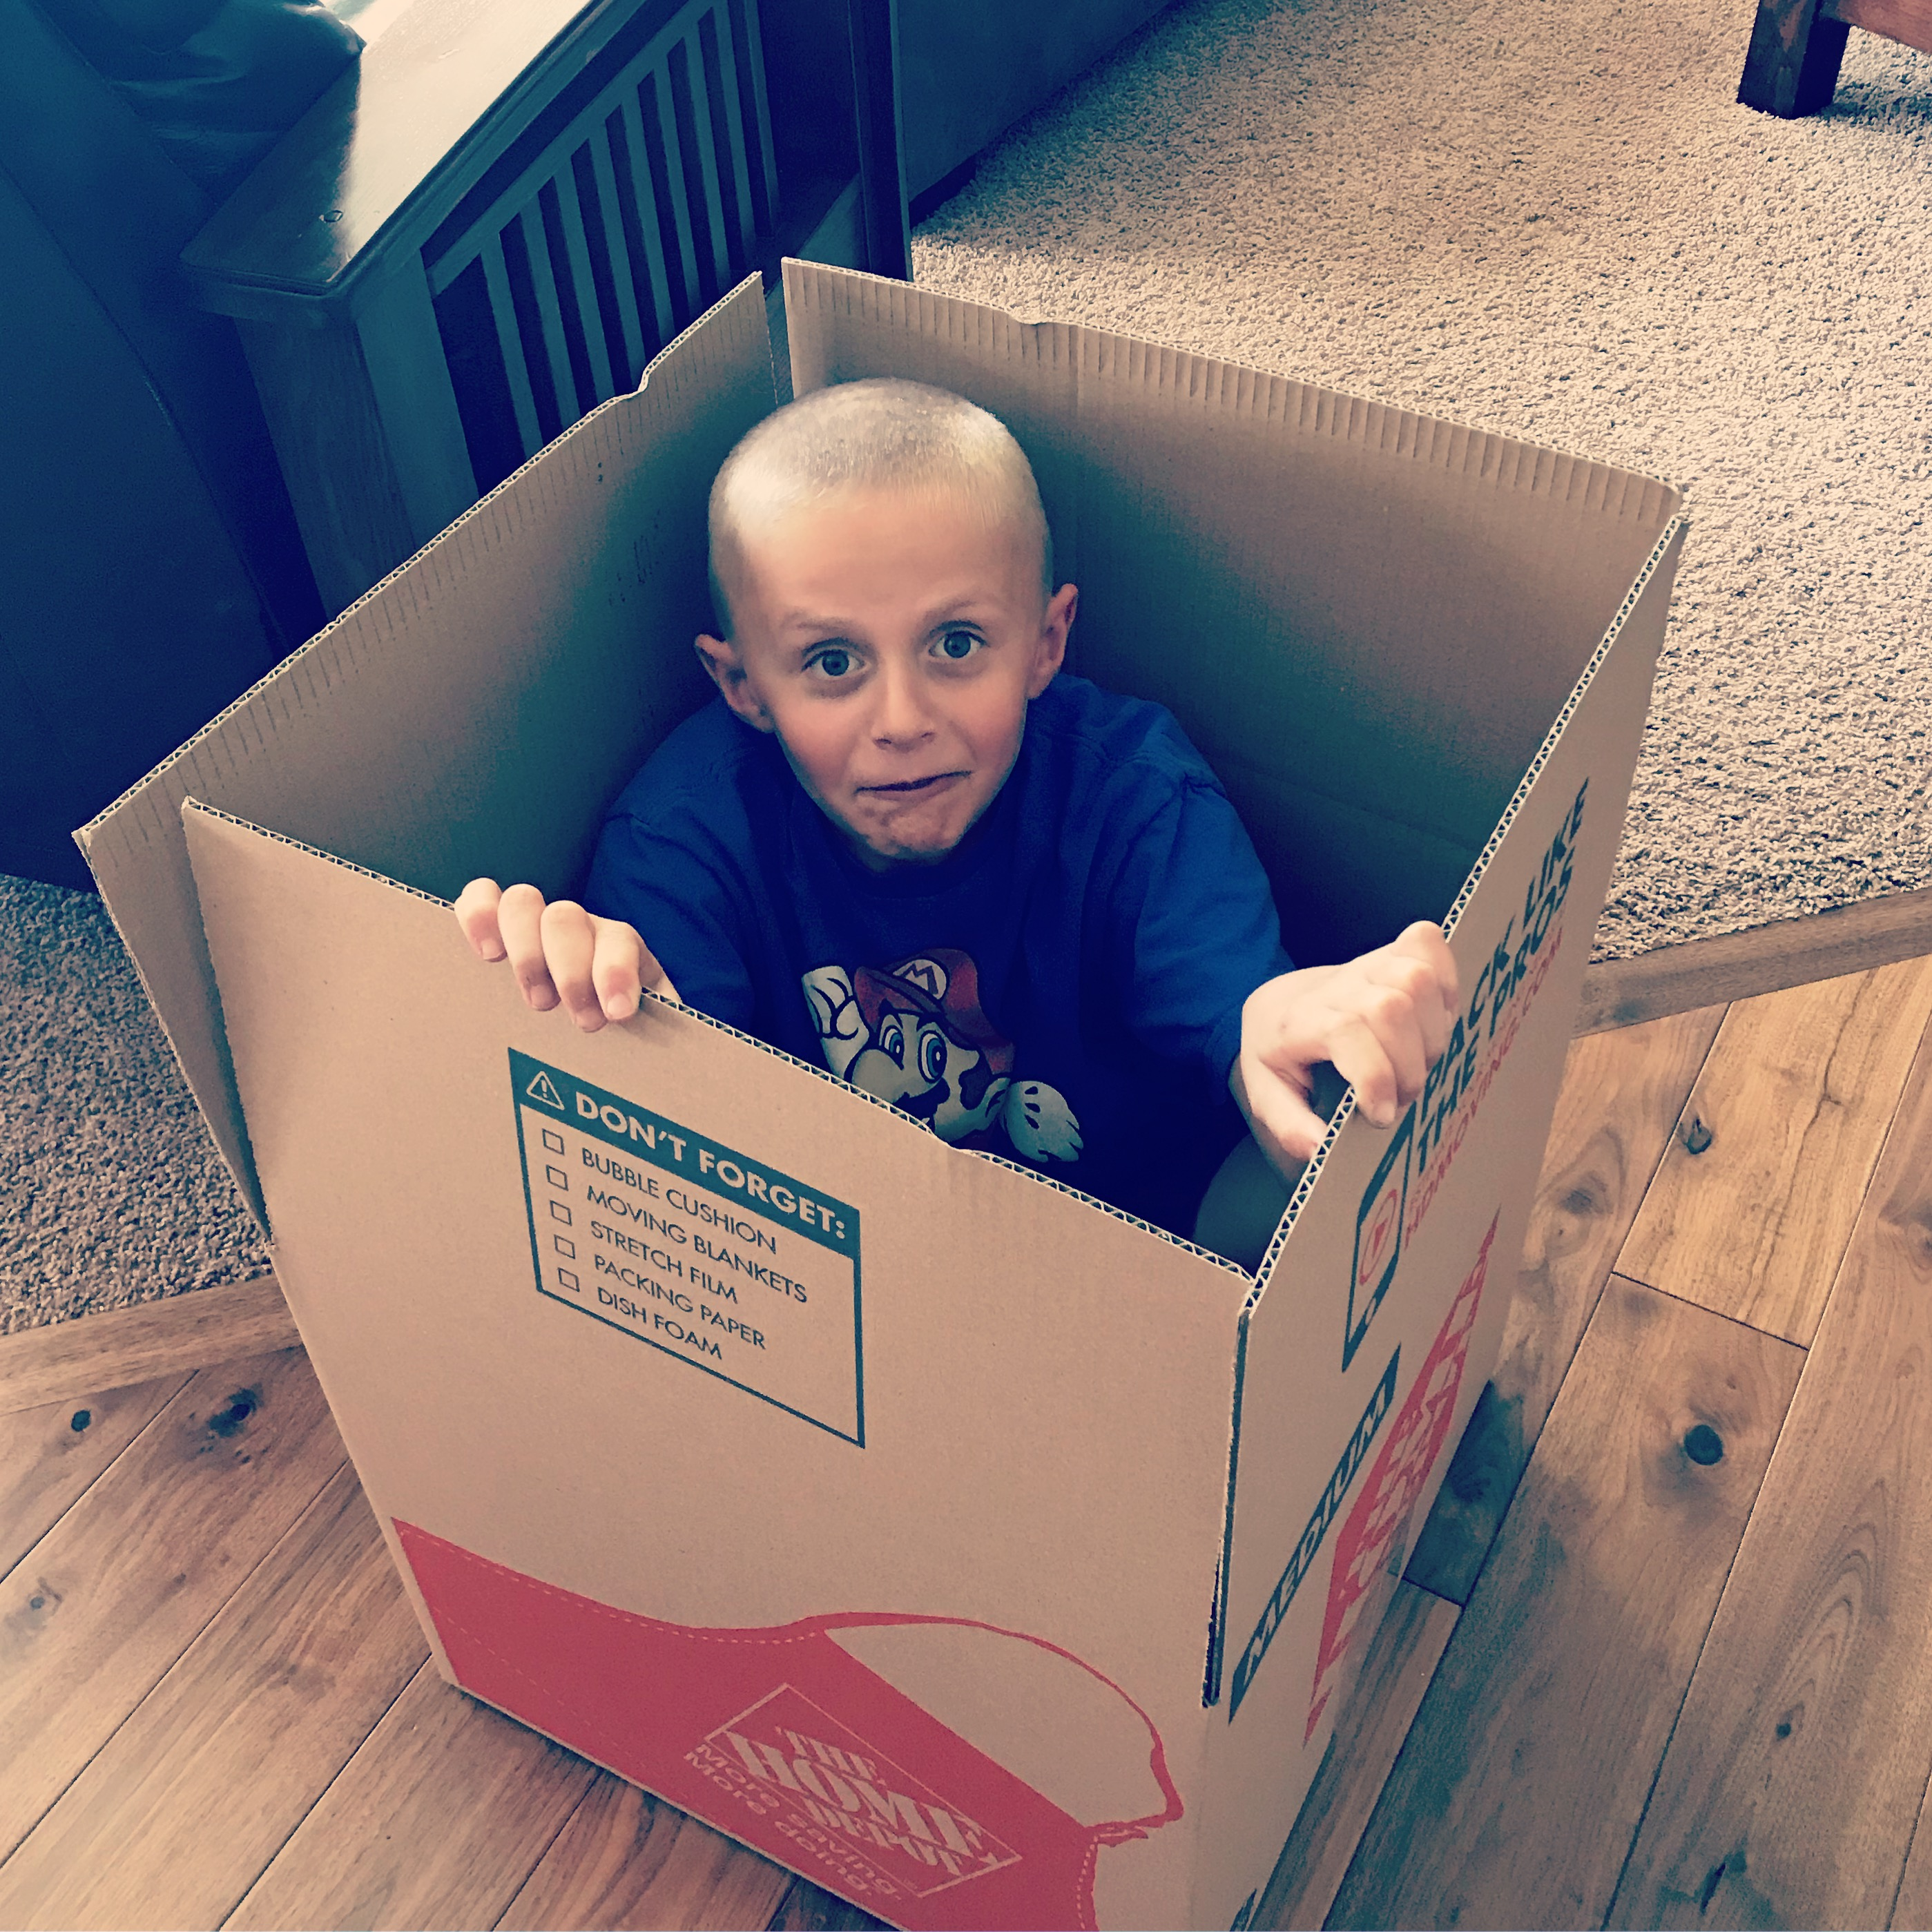 Joey in a box